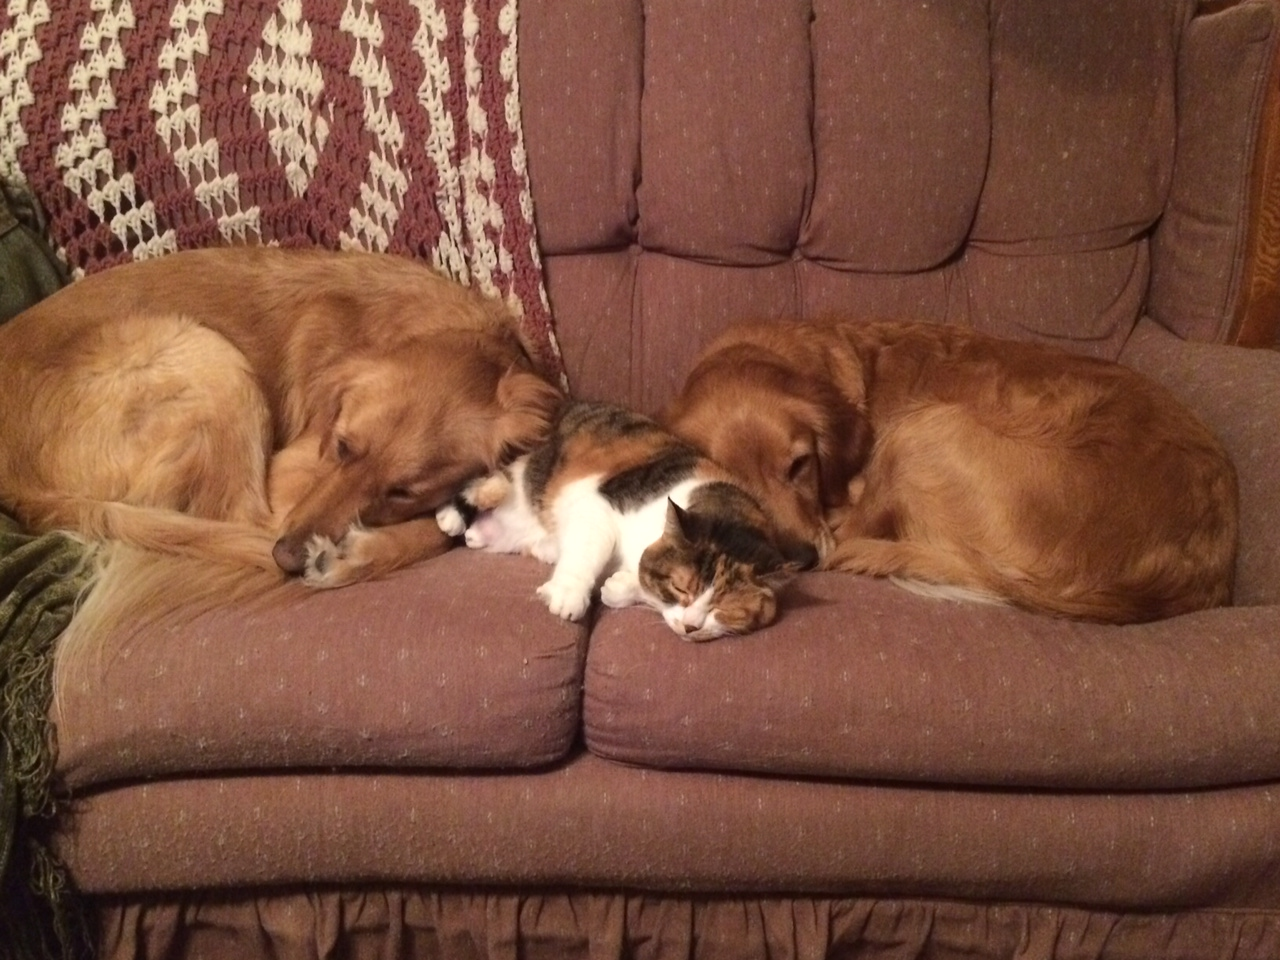 Two Golden Retrievers And A Calico Tabby Cat Sleeping